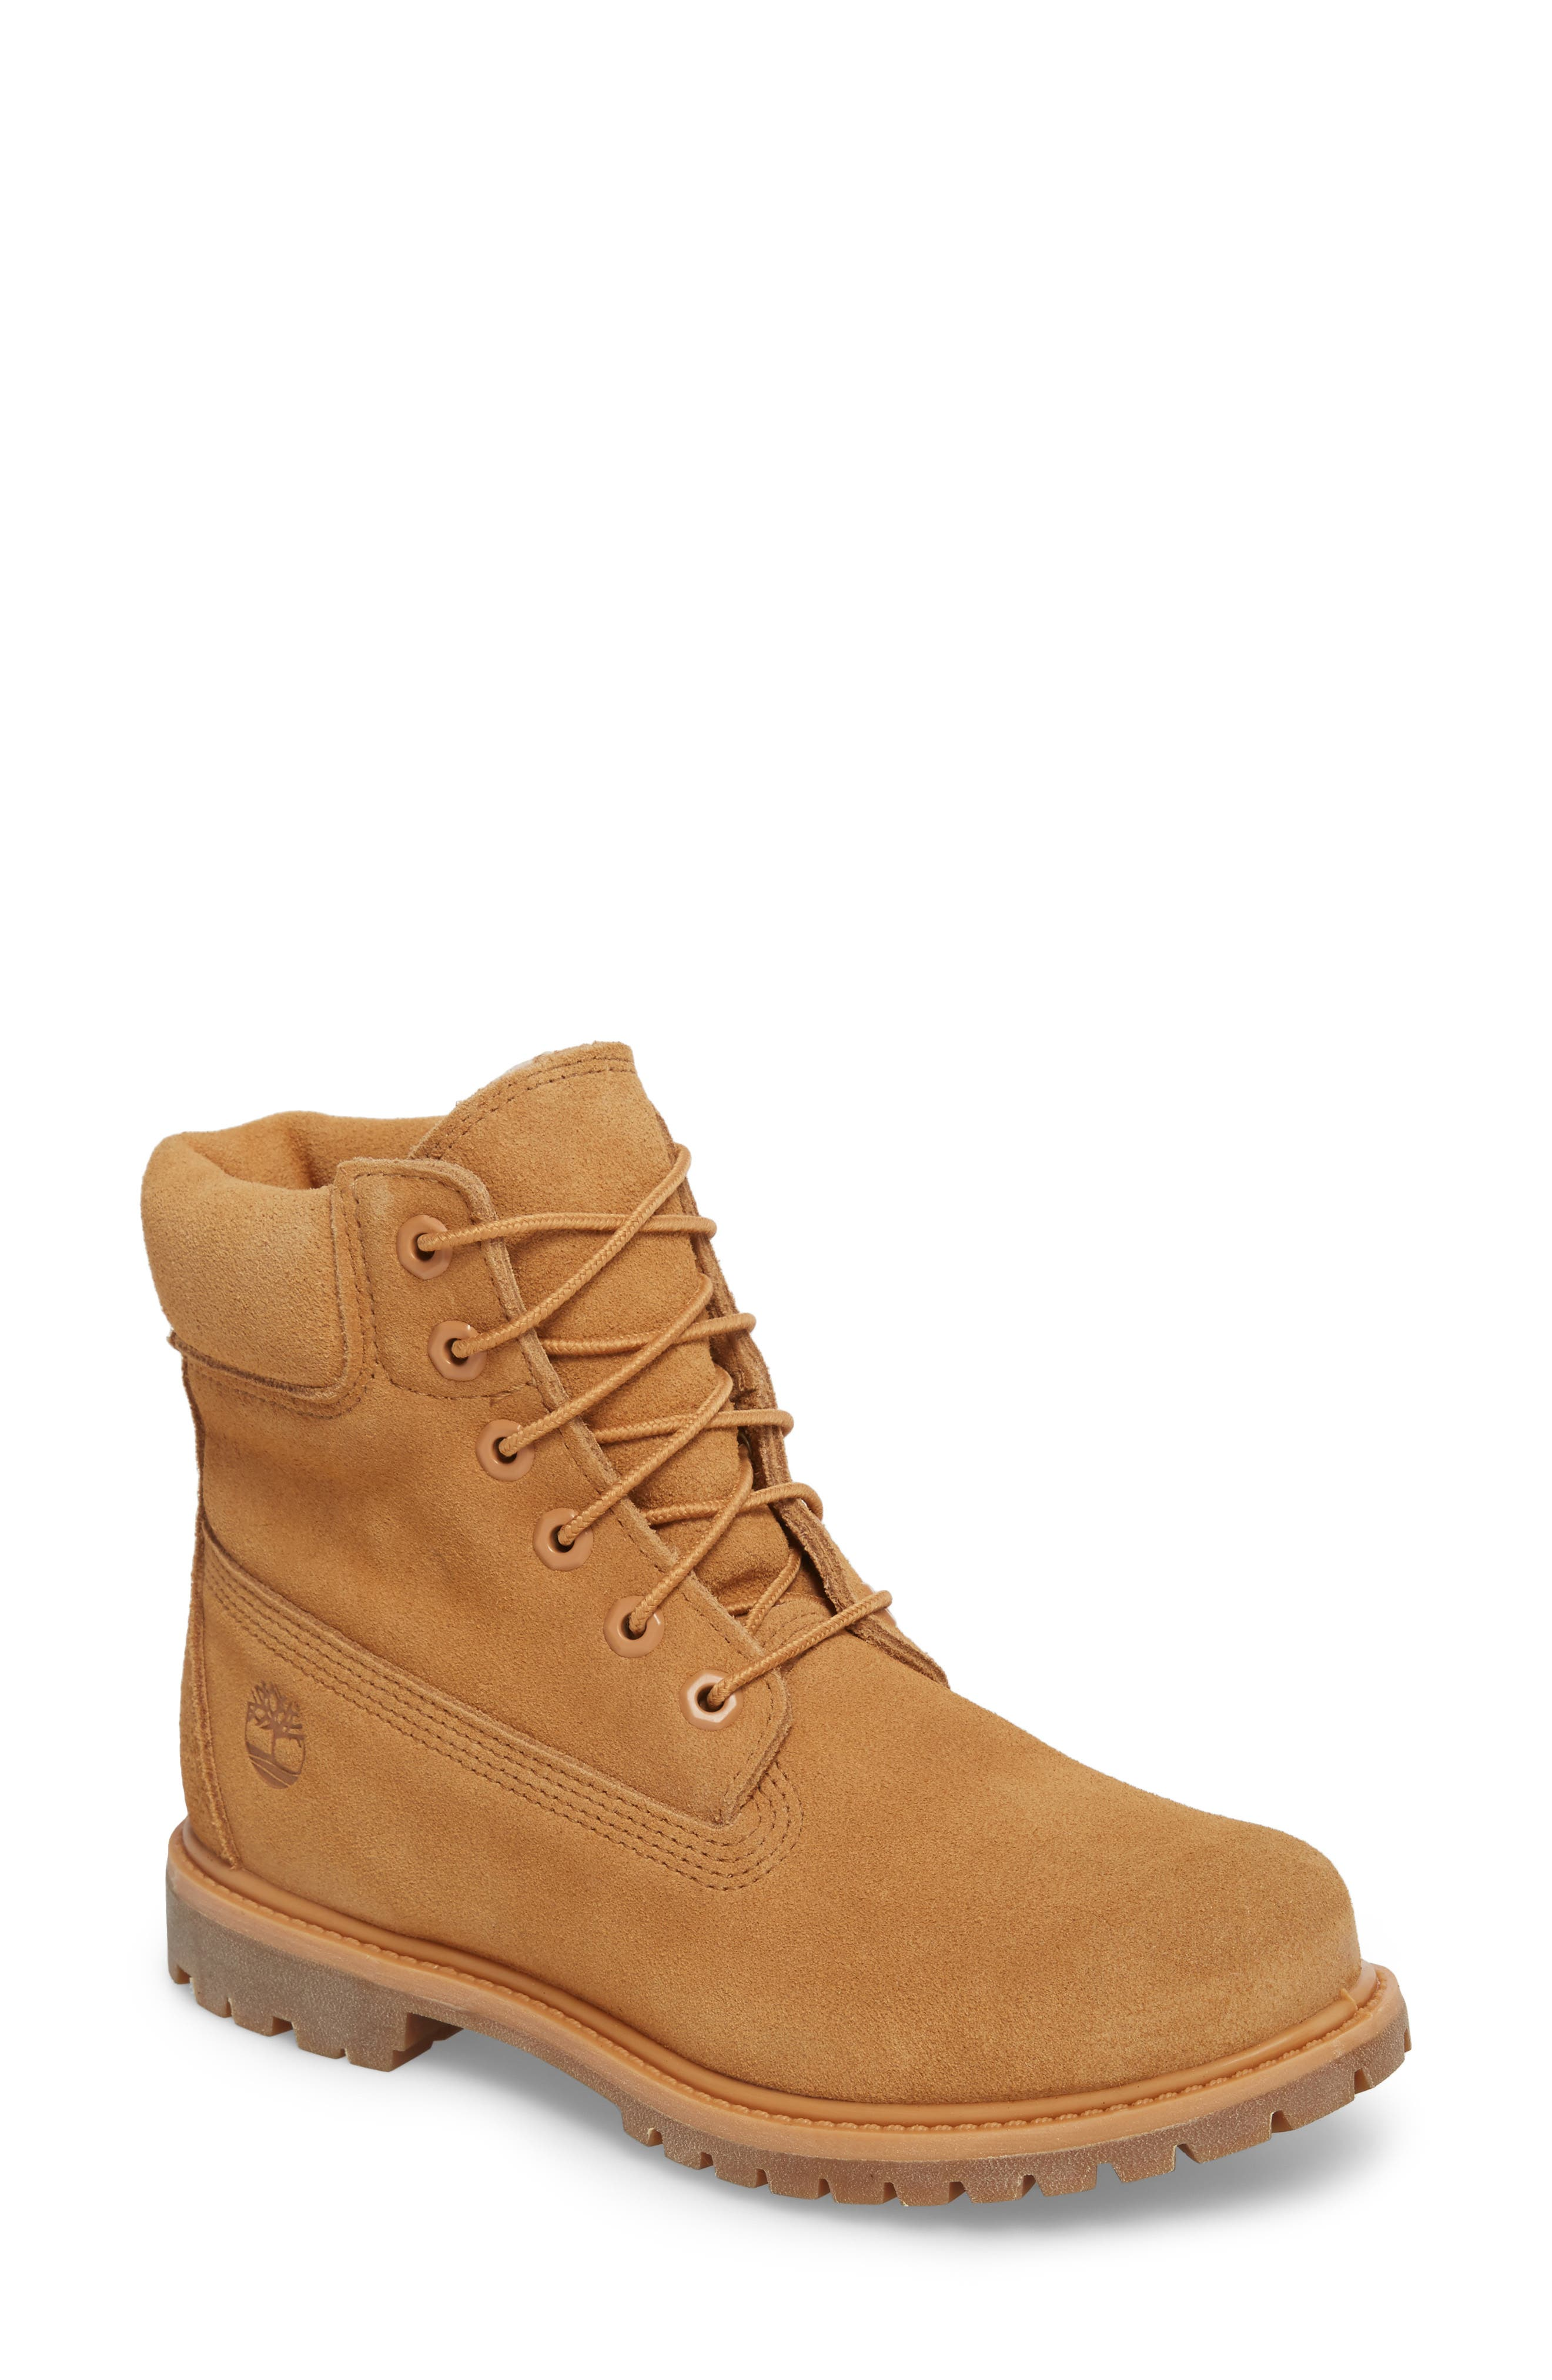 6 Inch Boot,                         Main,                         color,